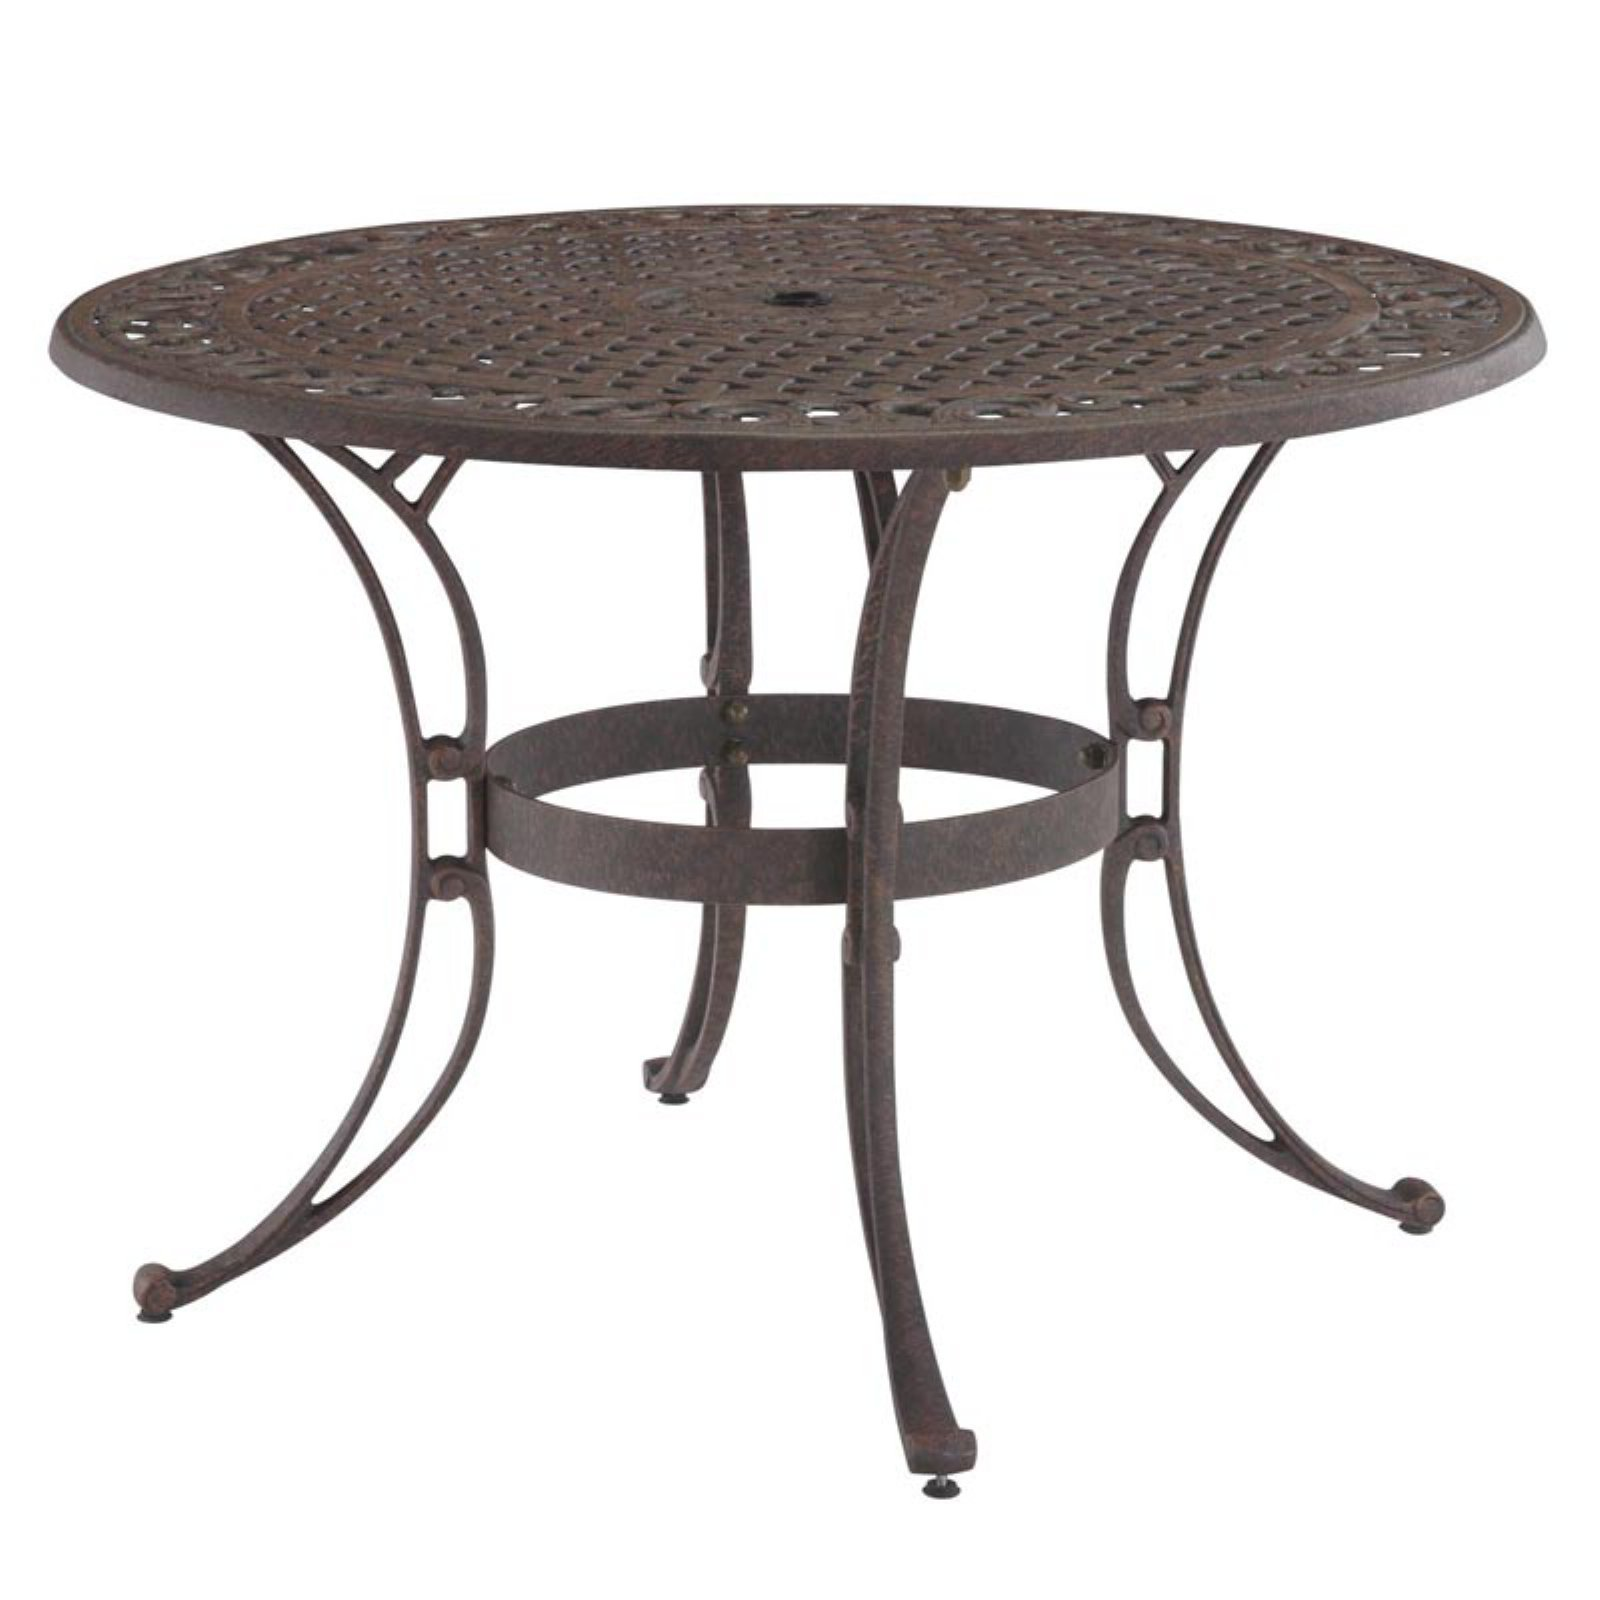 "Home Styles Biscayne 48"" Round Outdoor Dining Table, Multiple Finishes"